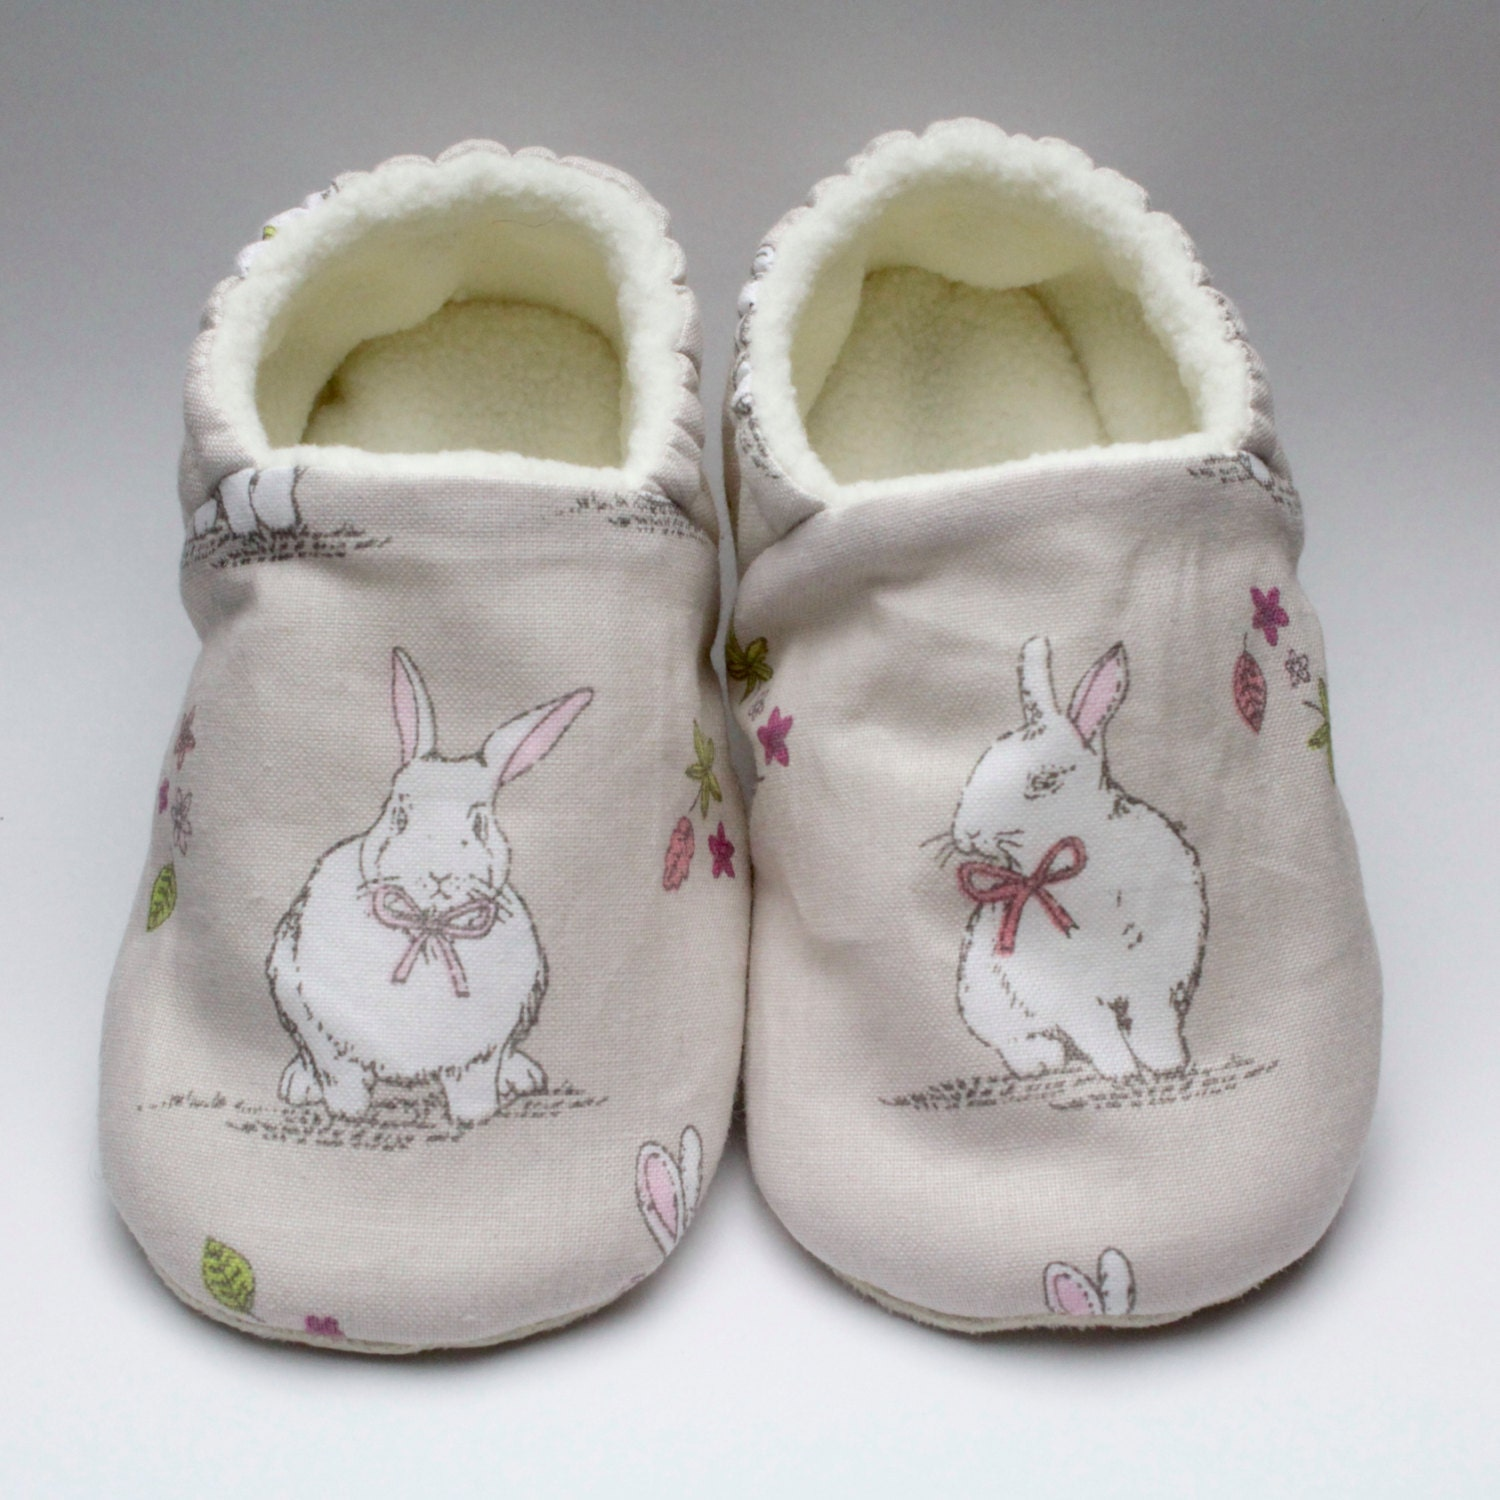 Soft sole cute little bunny baby shoes crib shoes slip on